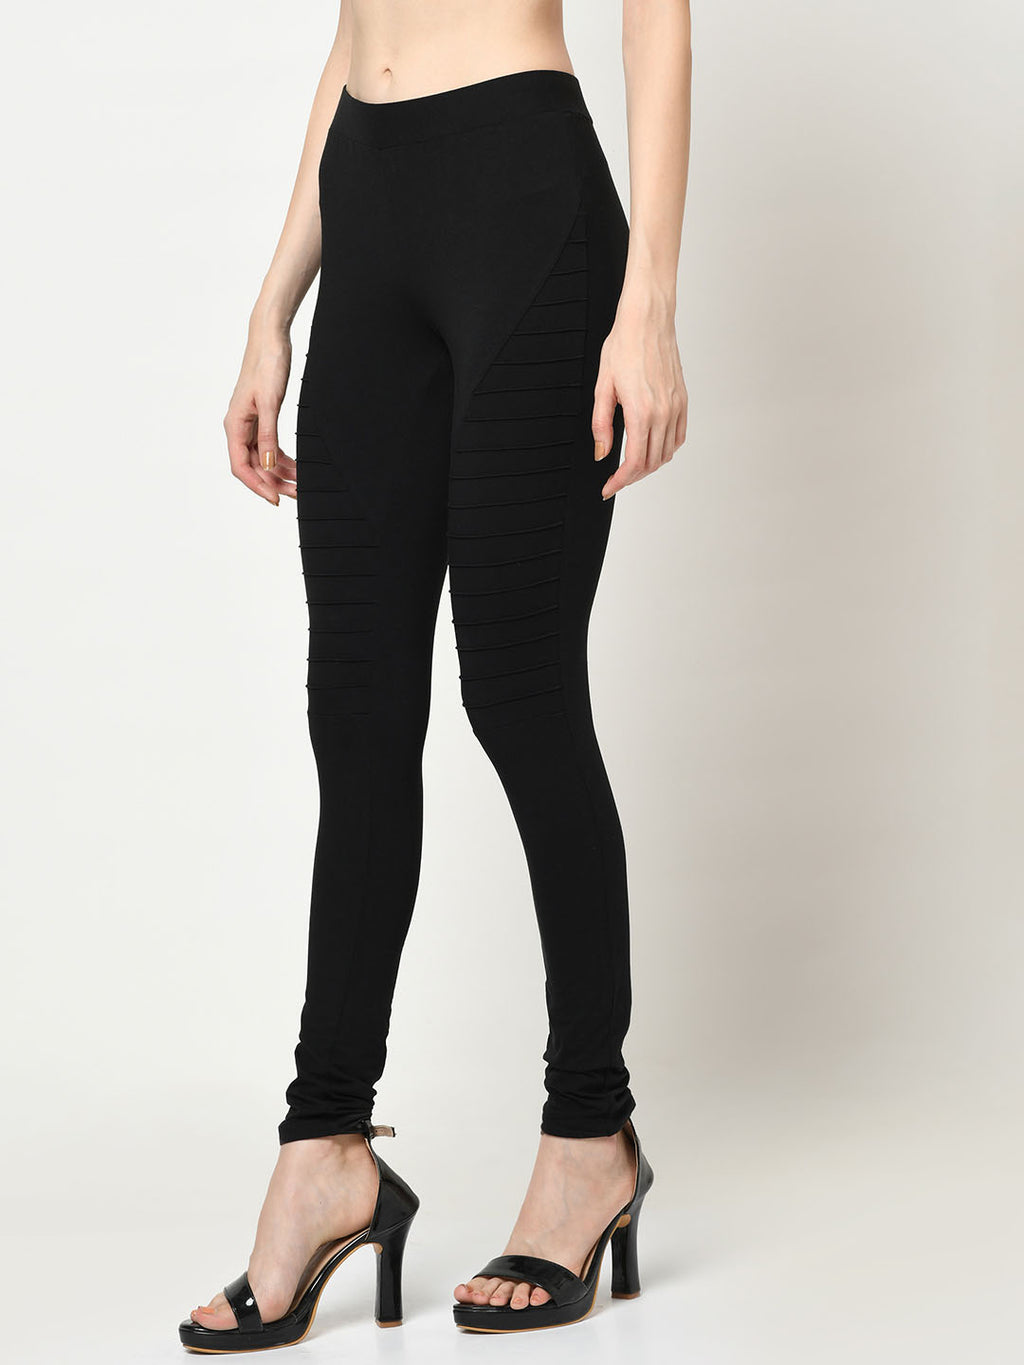 Black Leggings With Lateral Ridges - Avsoy